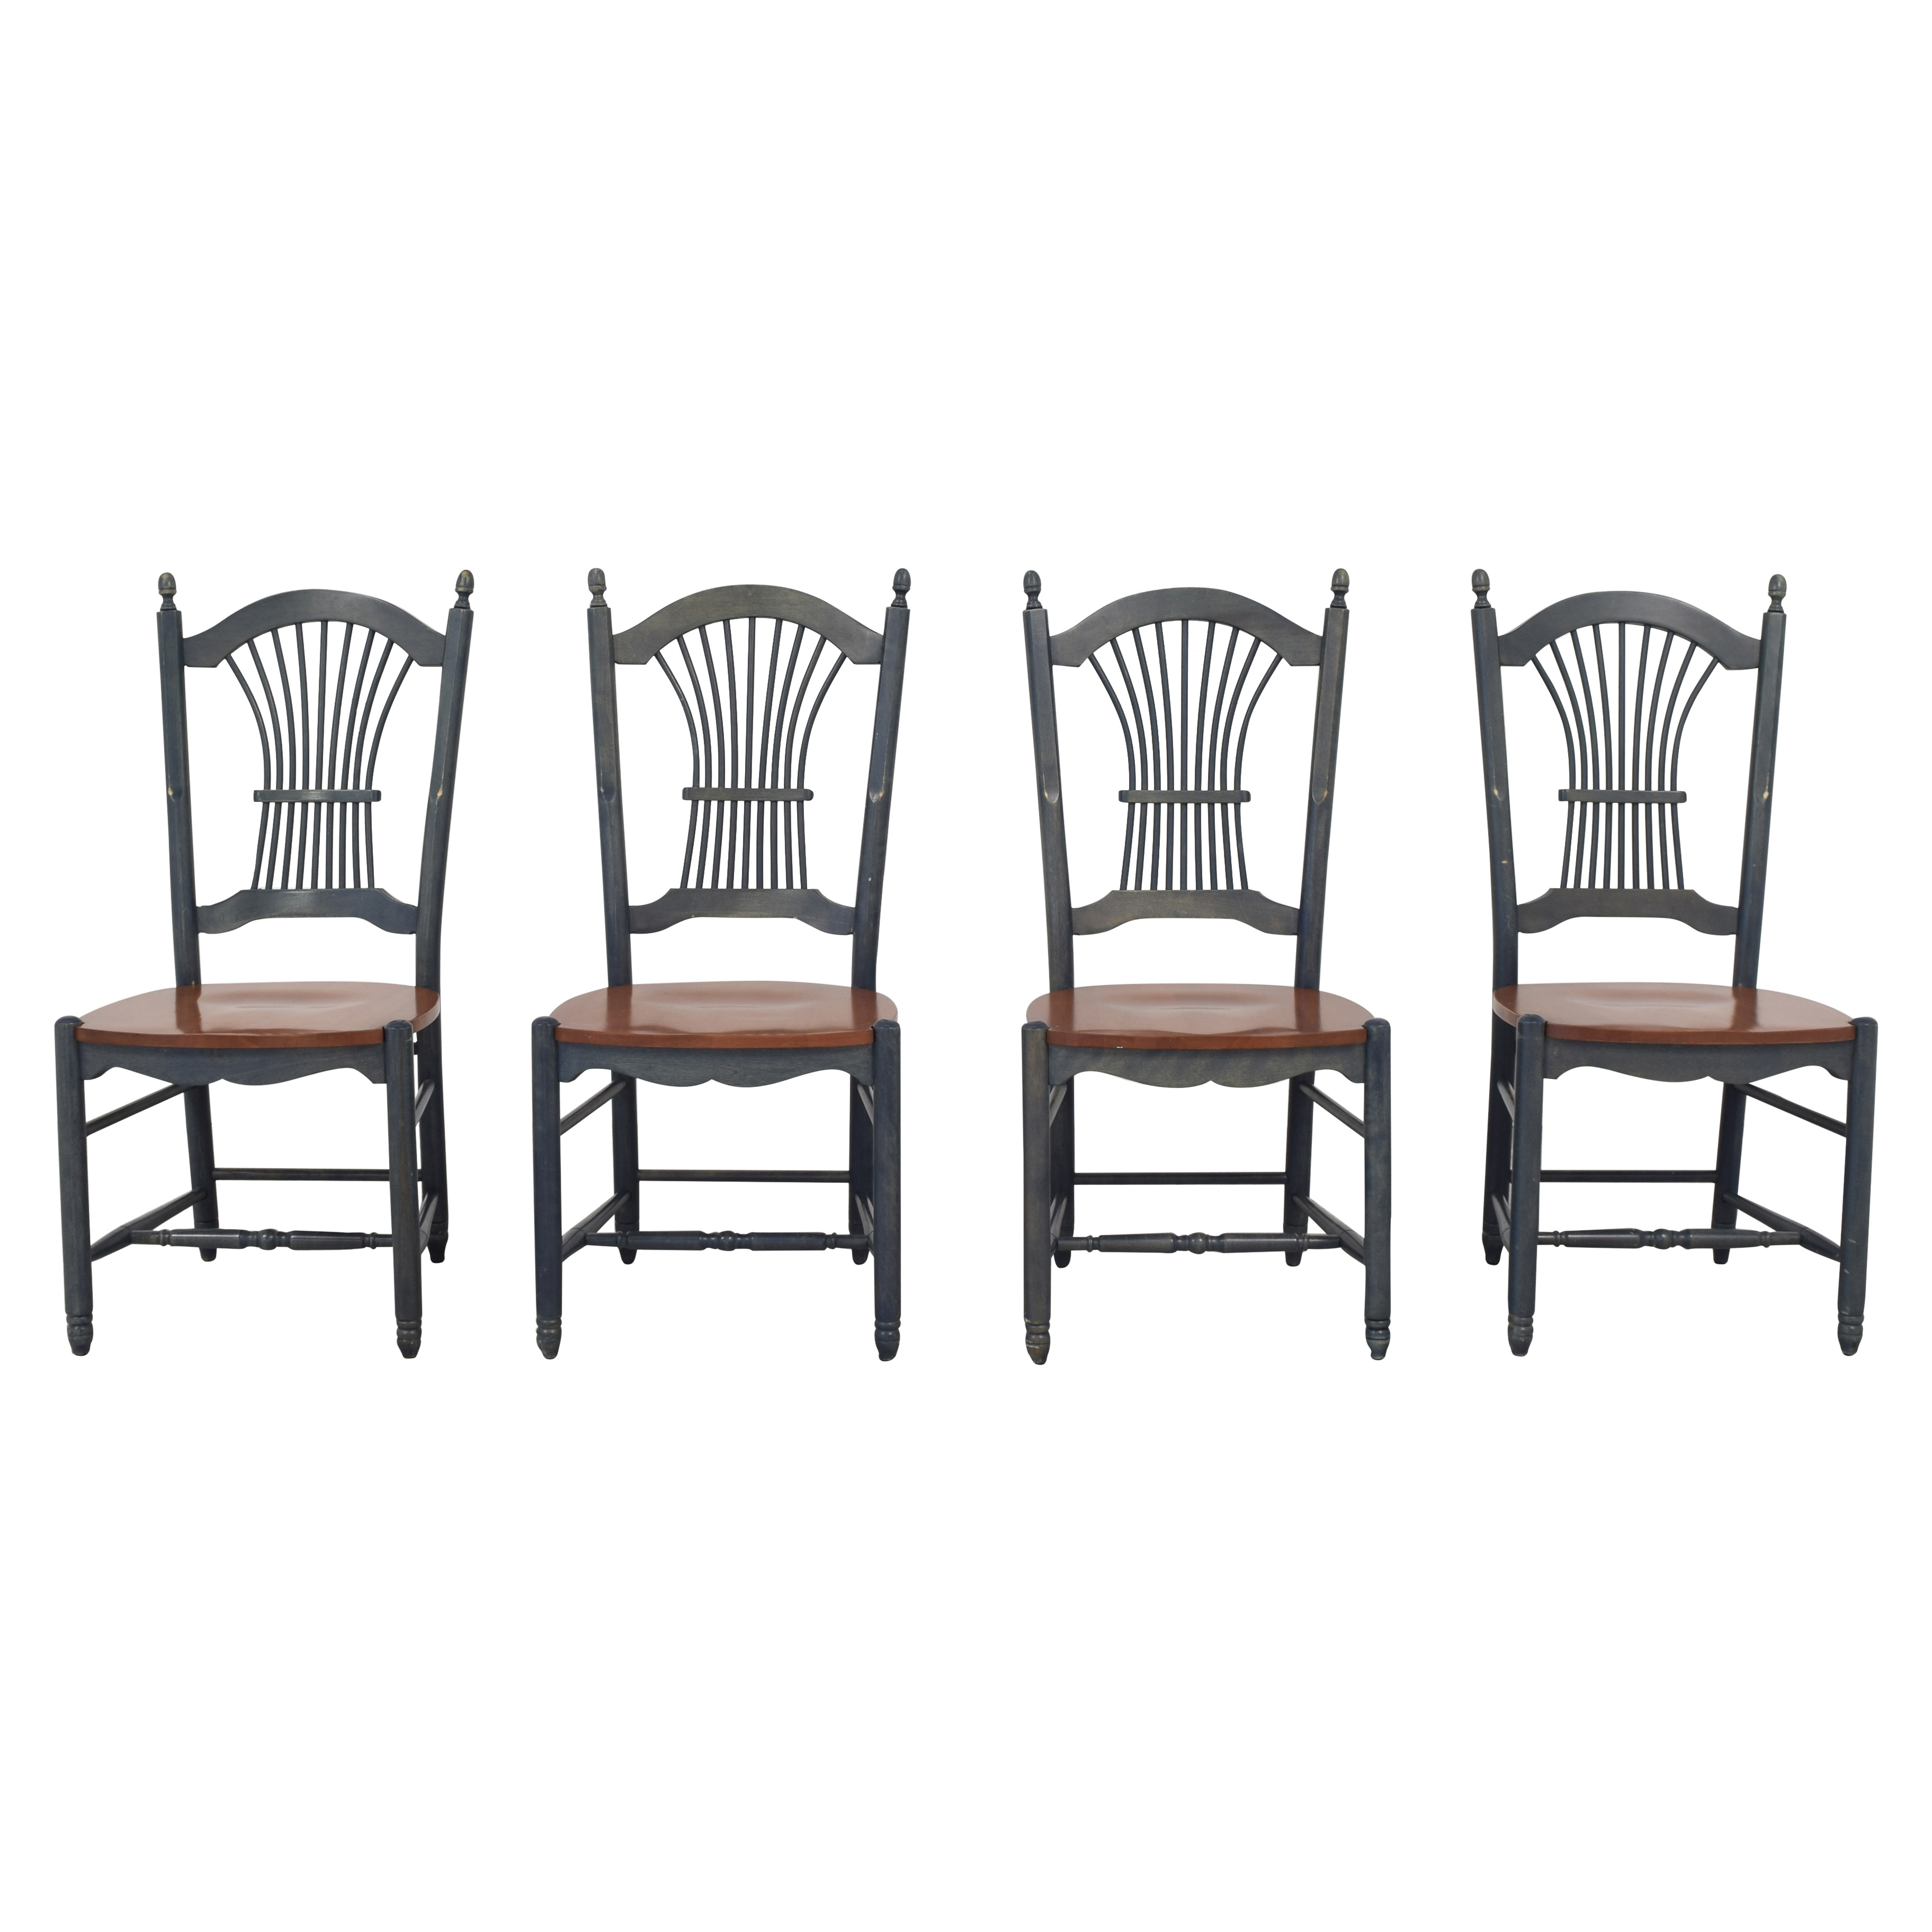 Canadel Canadel Custom Made Dining Room Chairs price